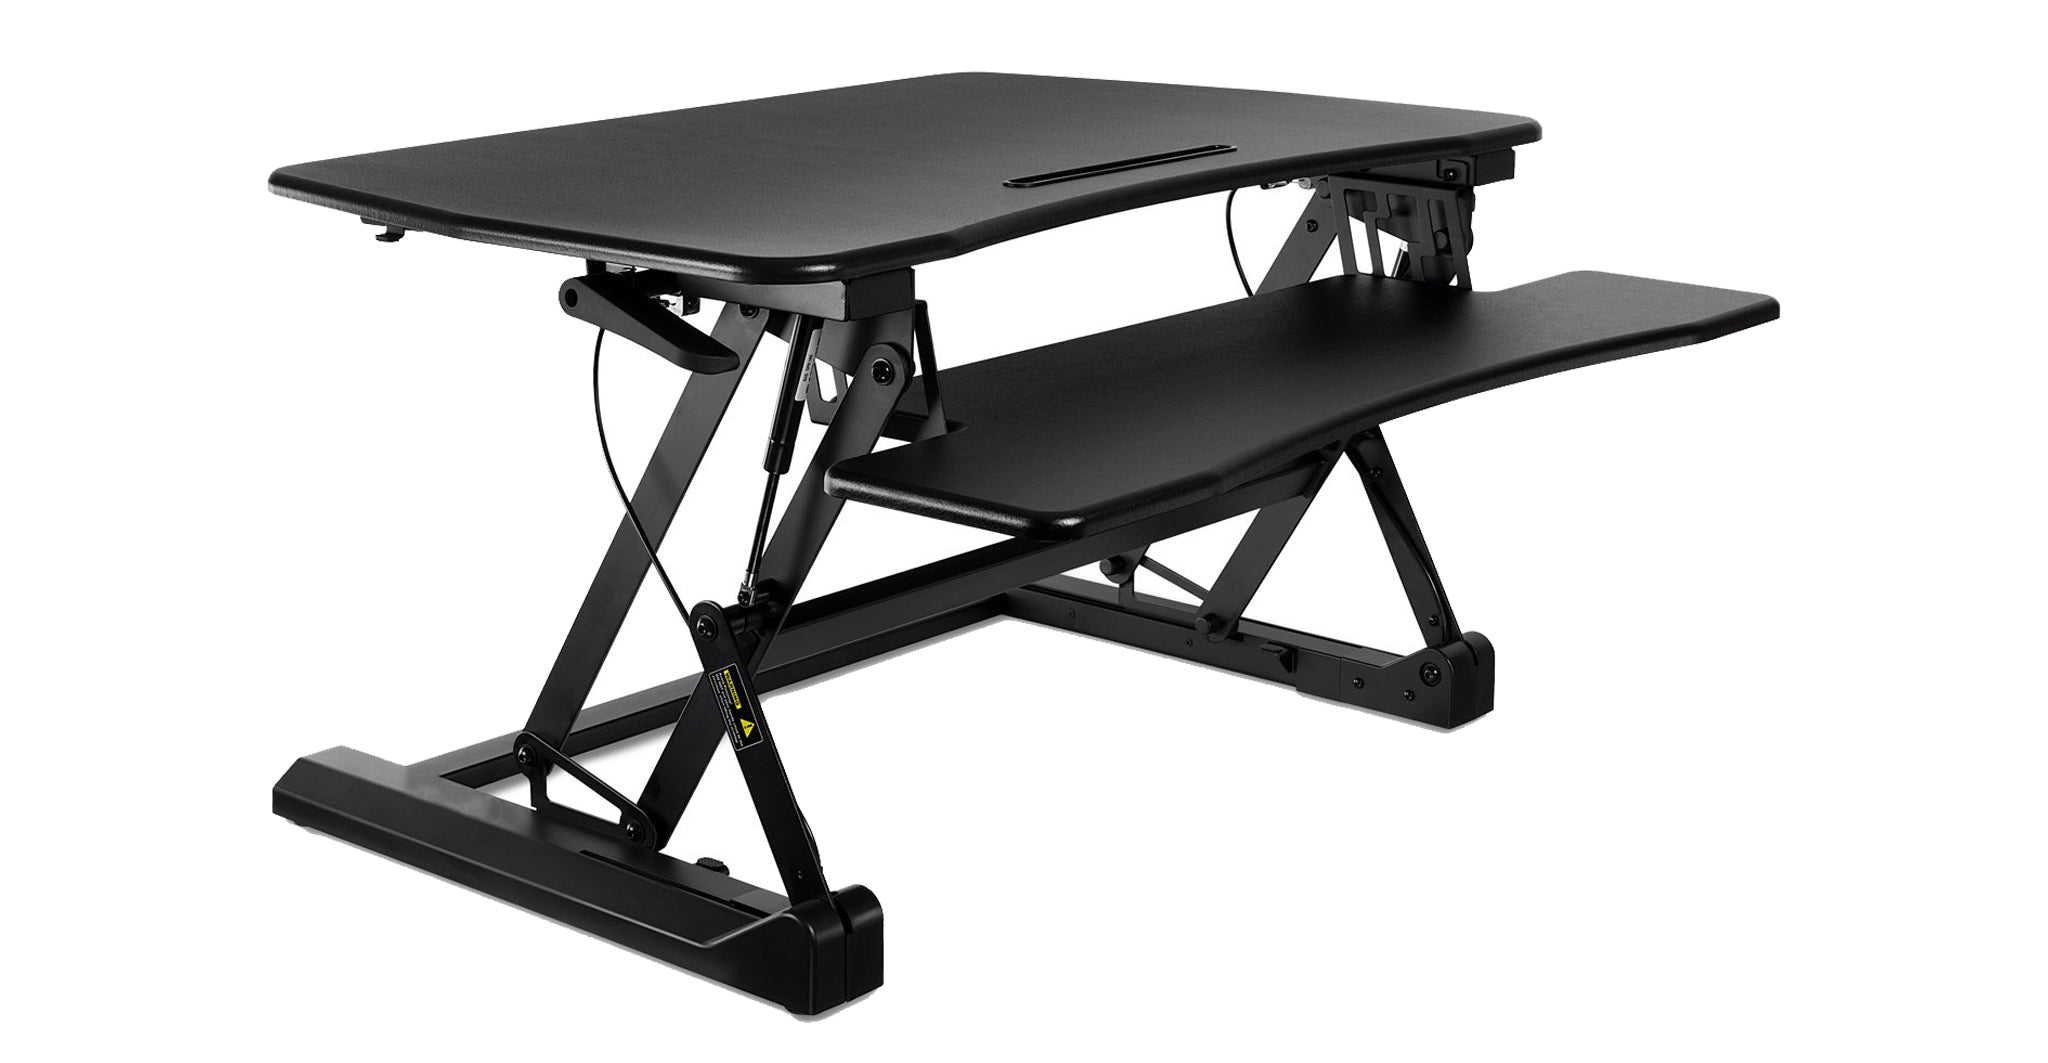 Ergonomic Sit-Stand Desktop Workstation Stand